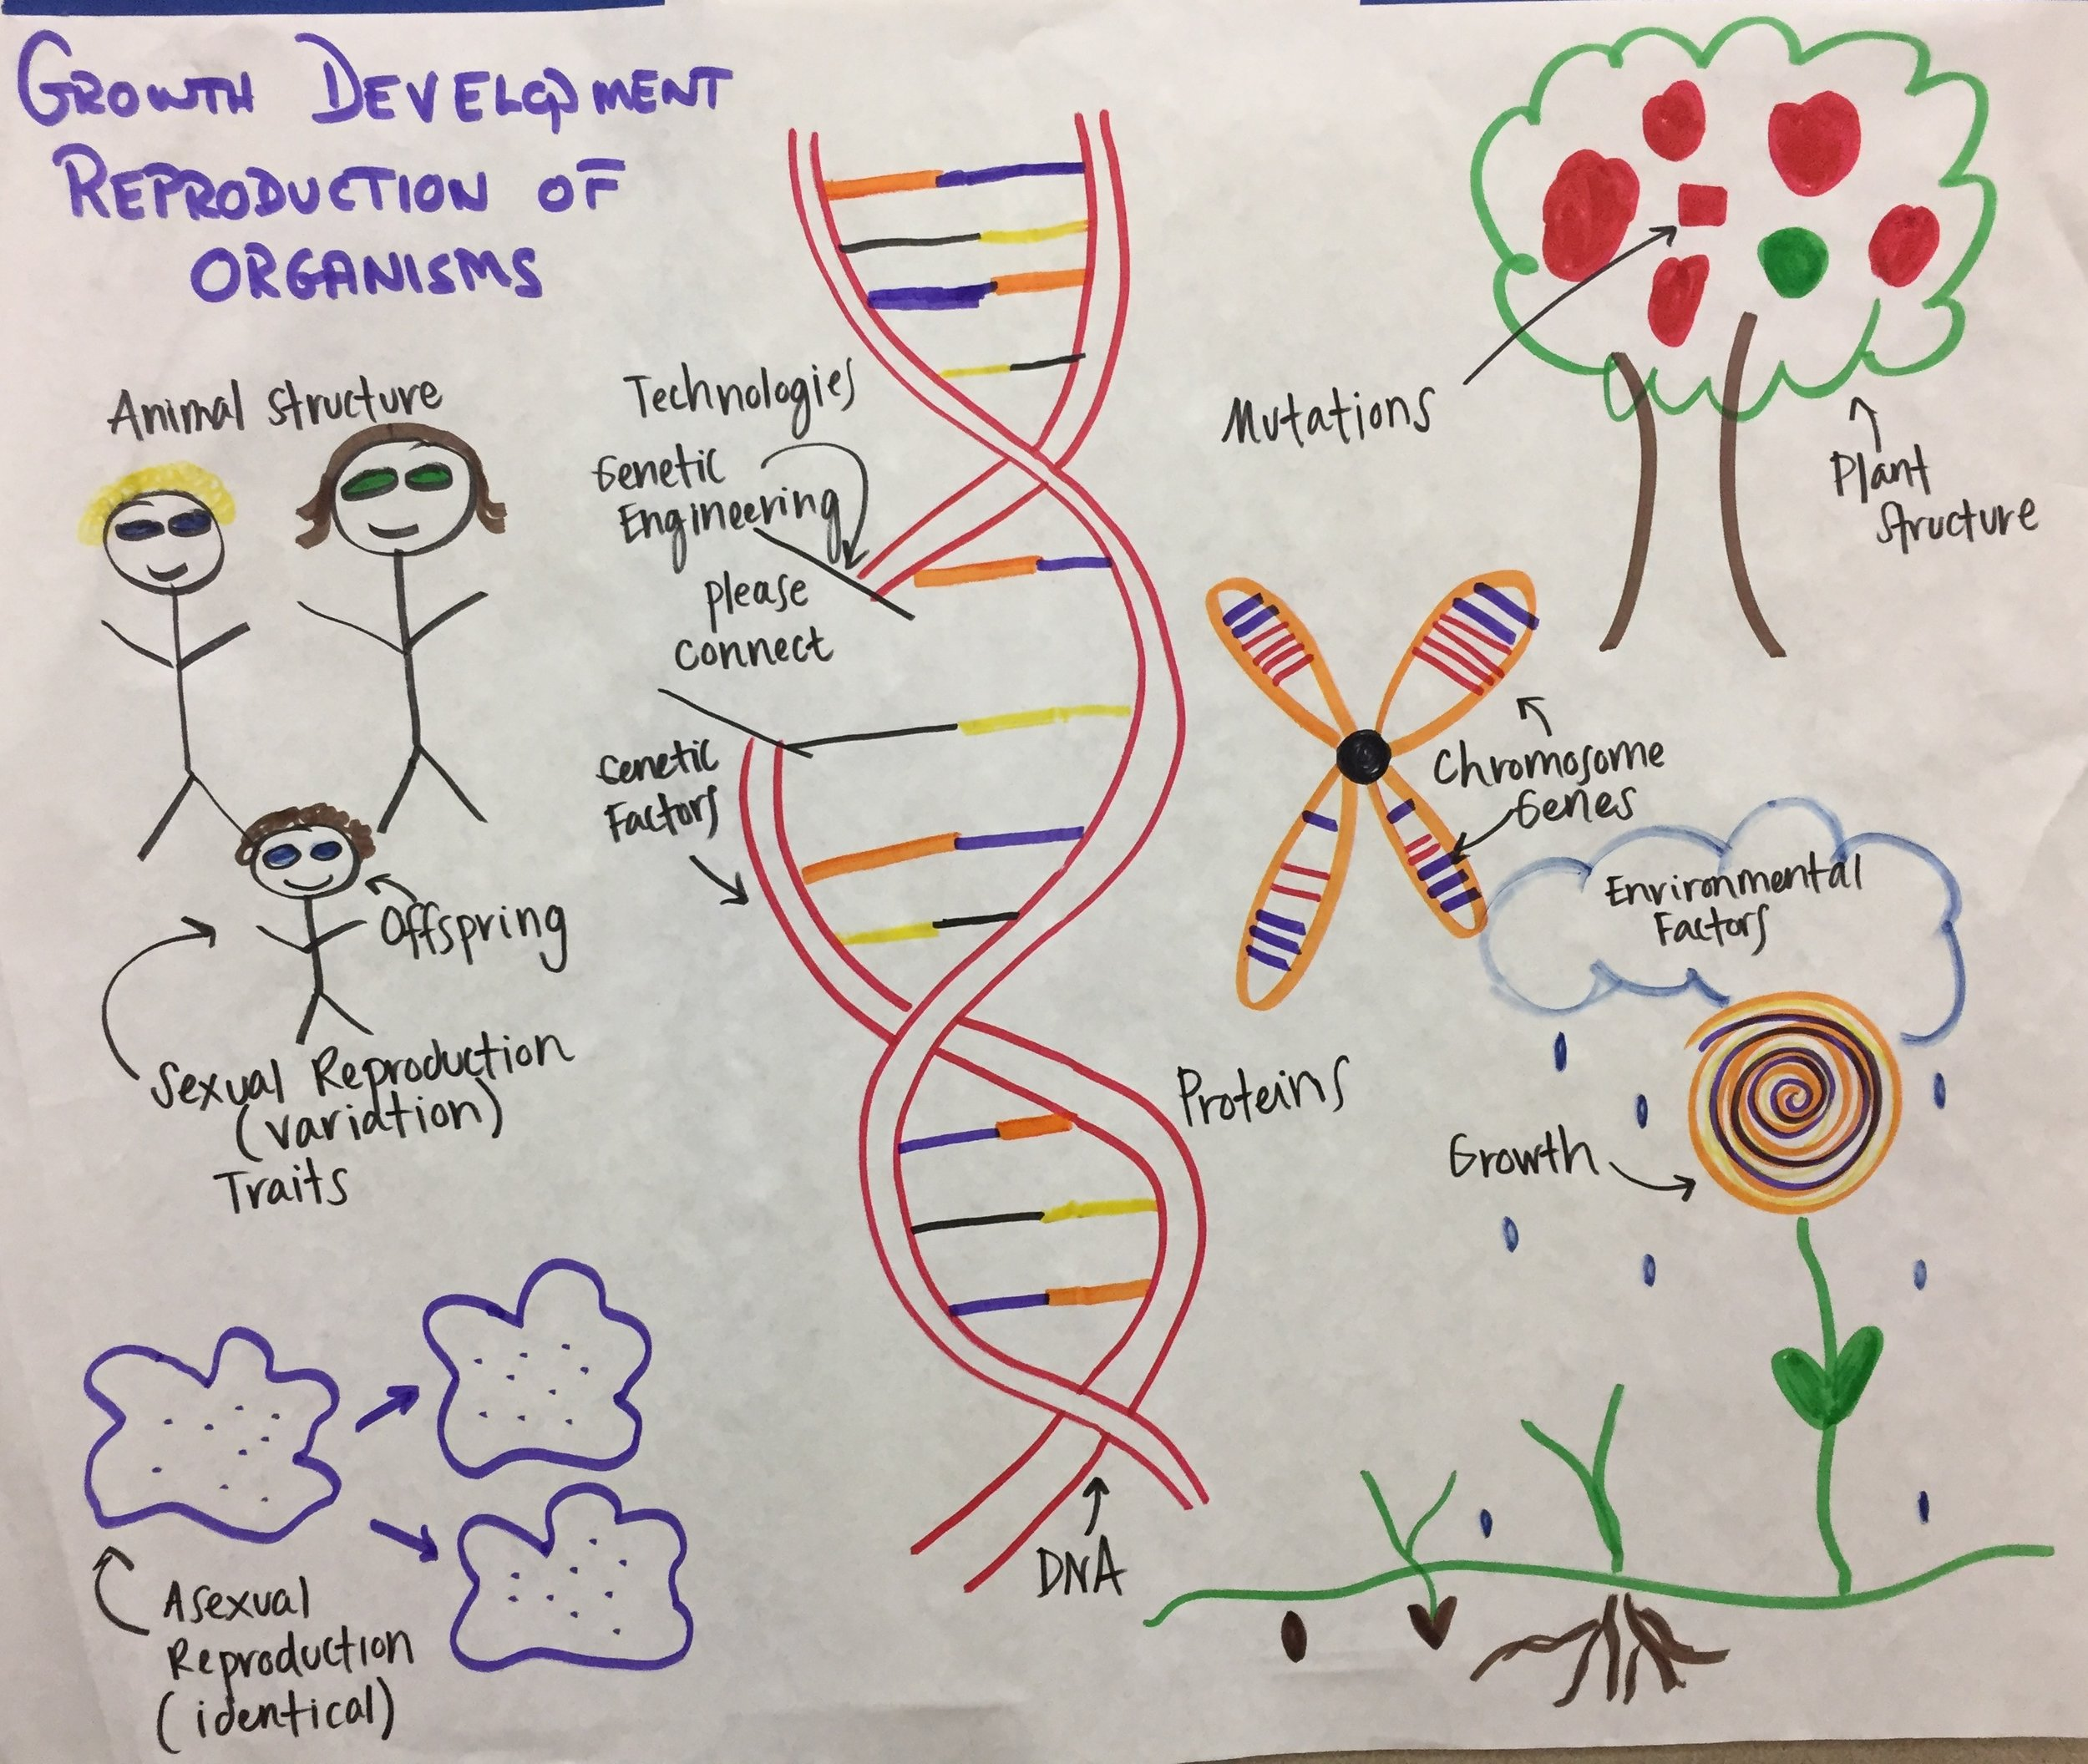 MS Growth Development of Organisms d.JPG